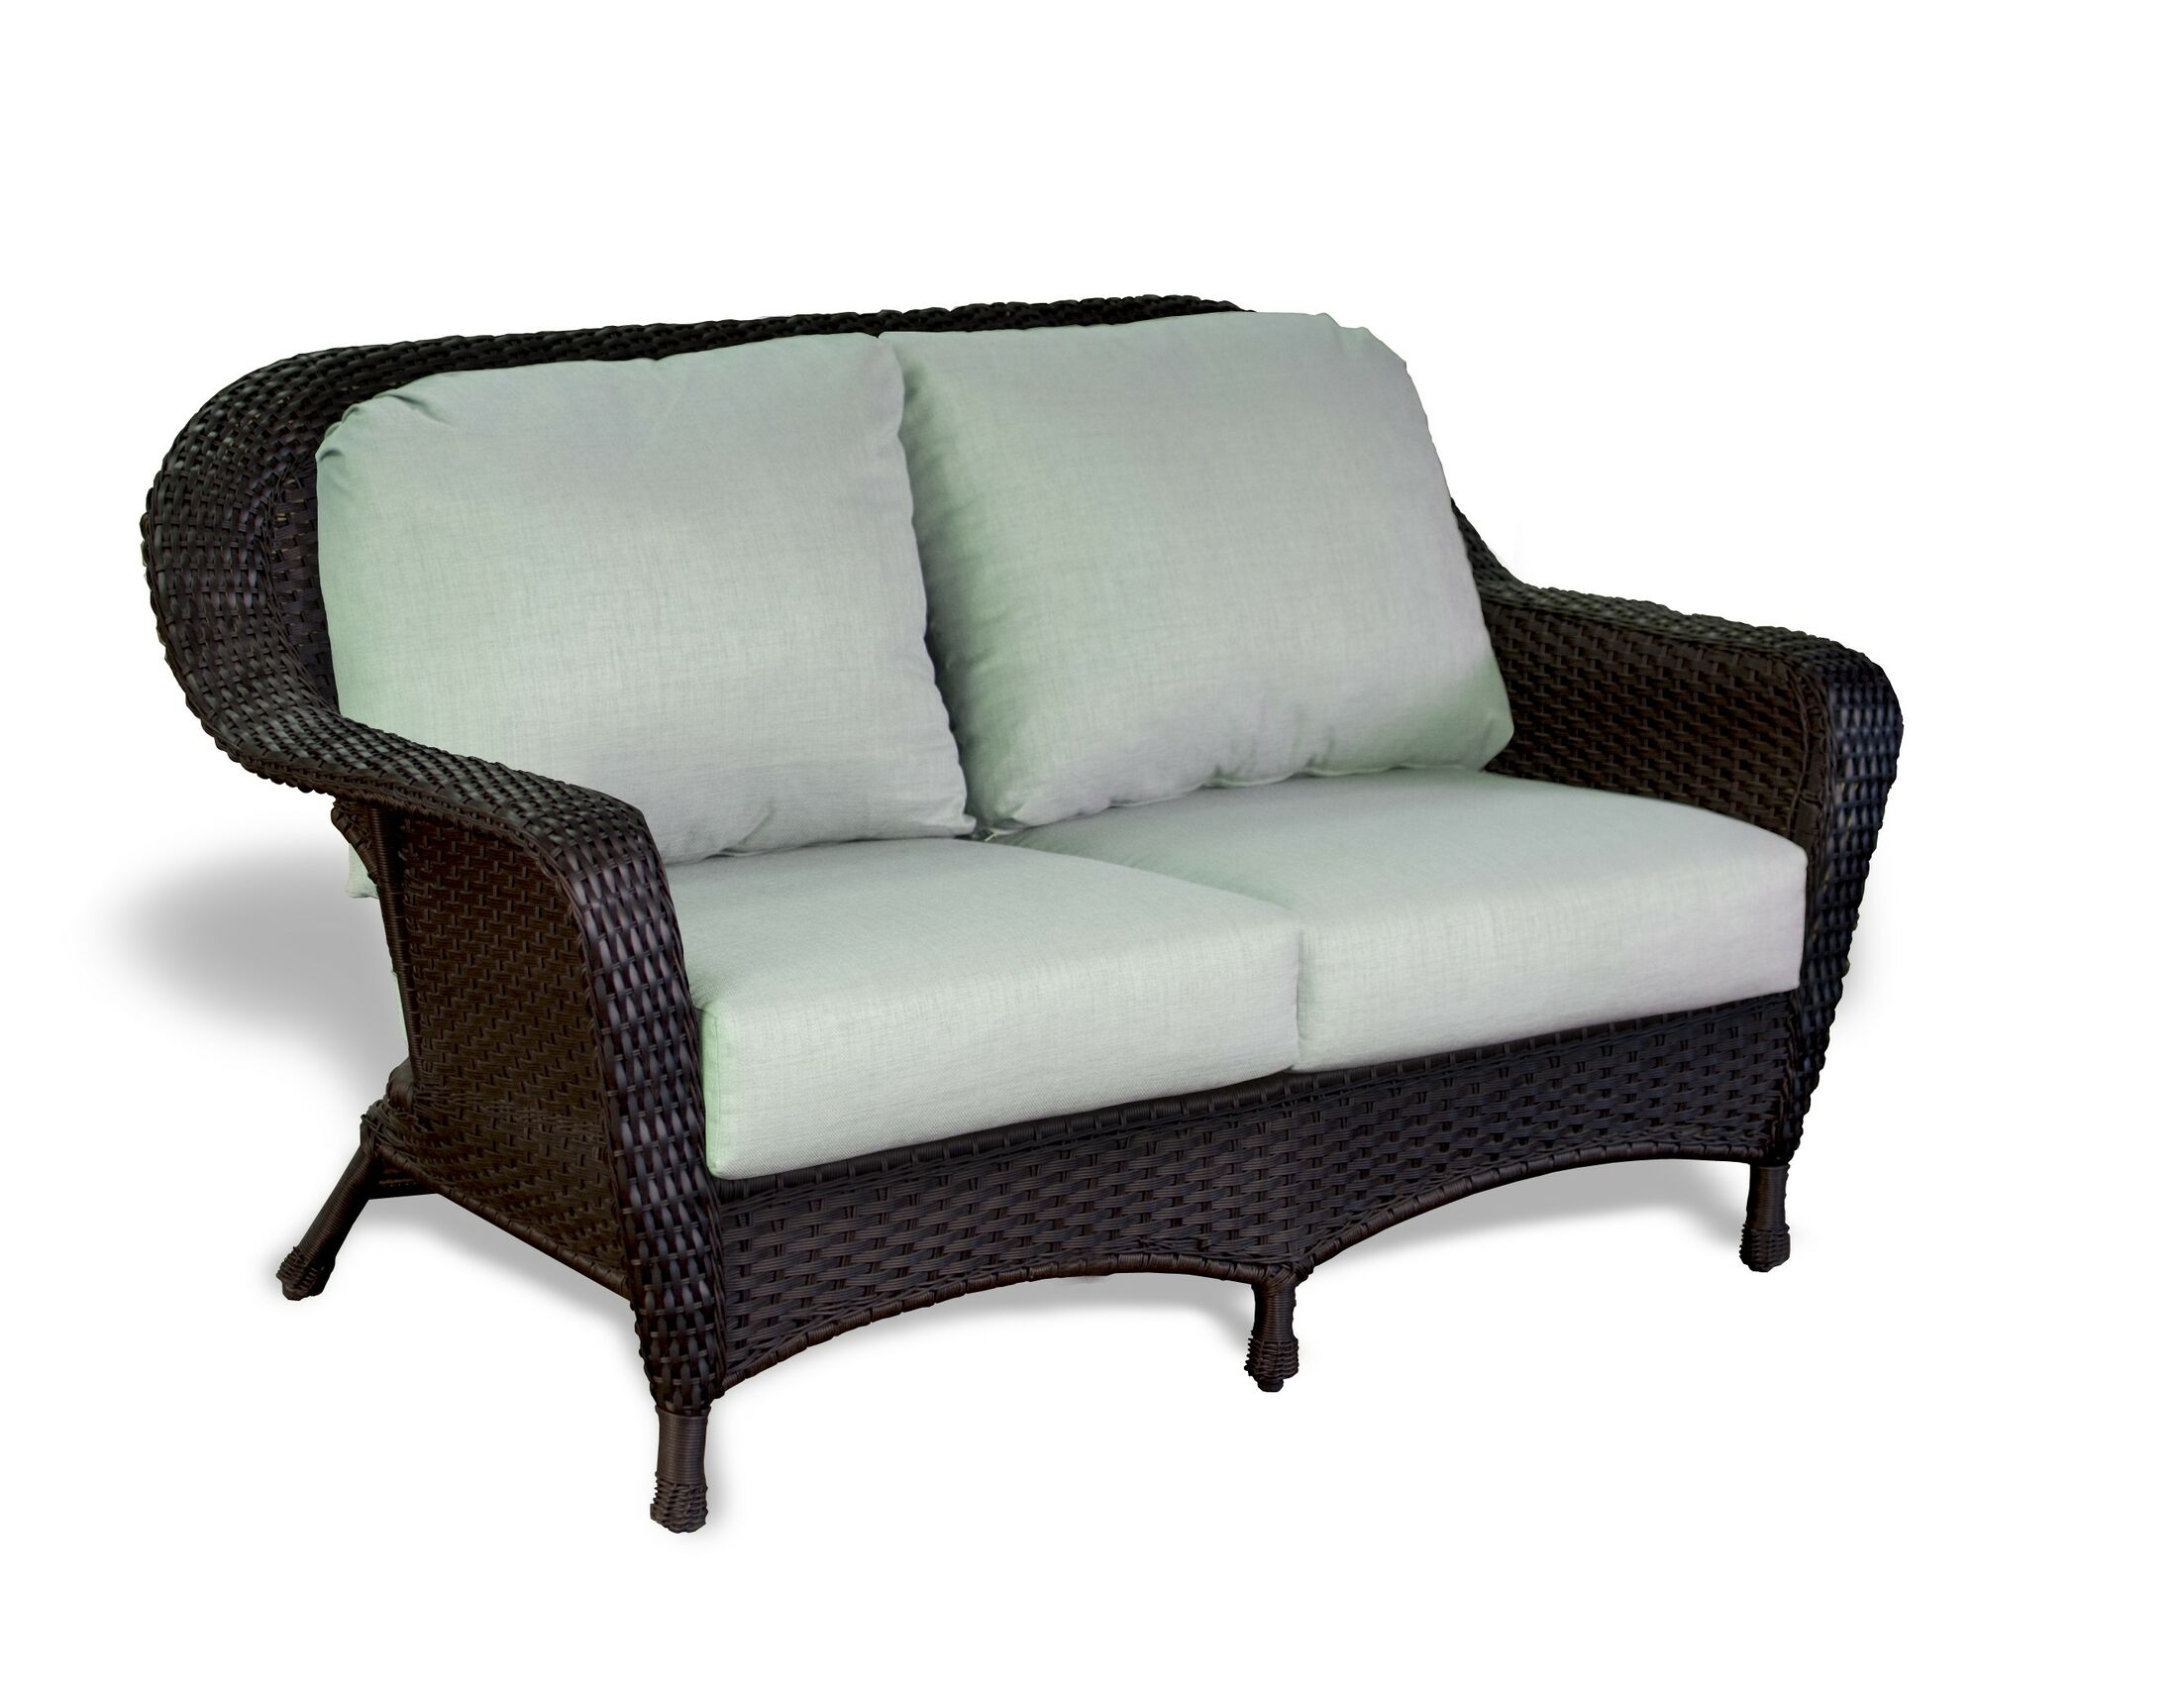 Fleischmann Loveseat Finish: Mojave, Fabric Color: Sunbrella Spectrum Cilantro